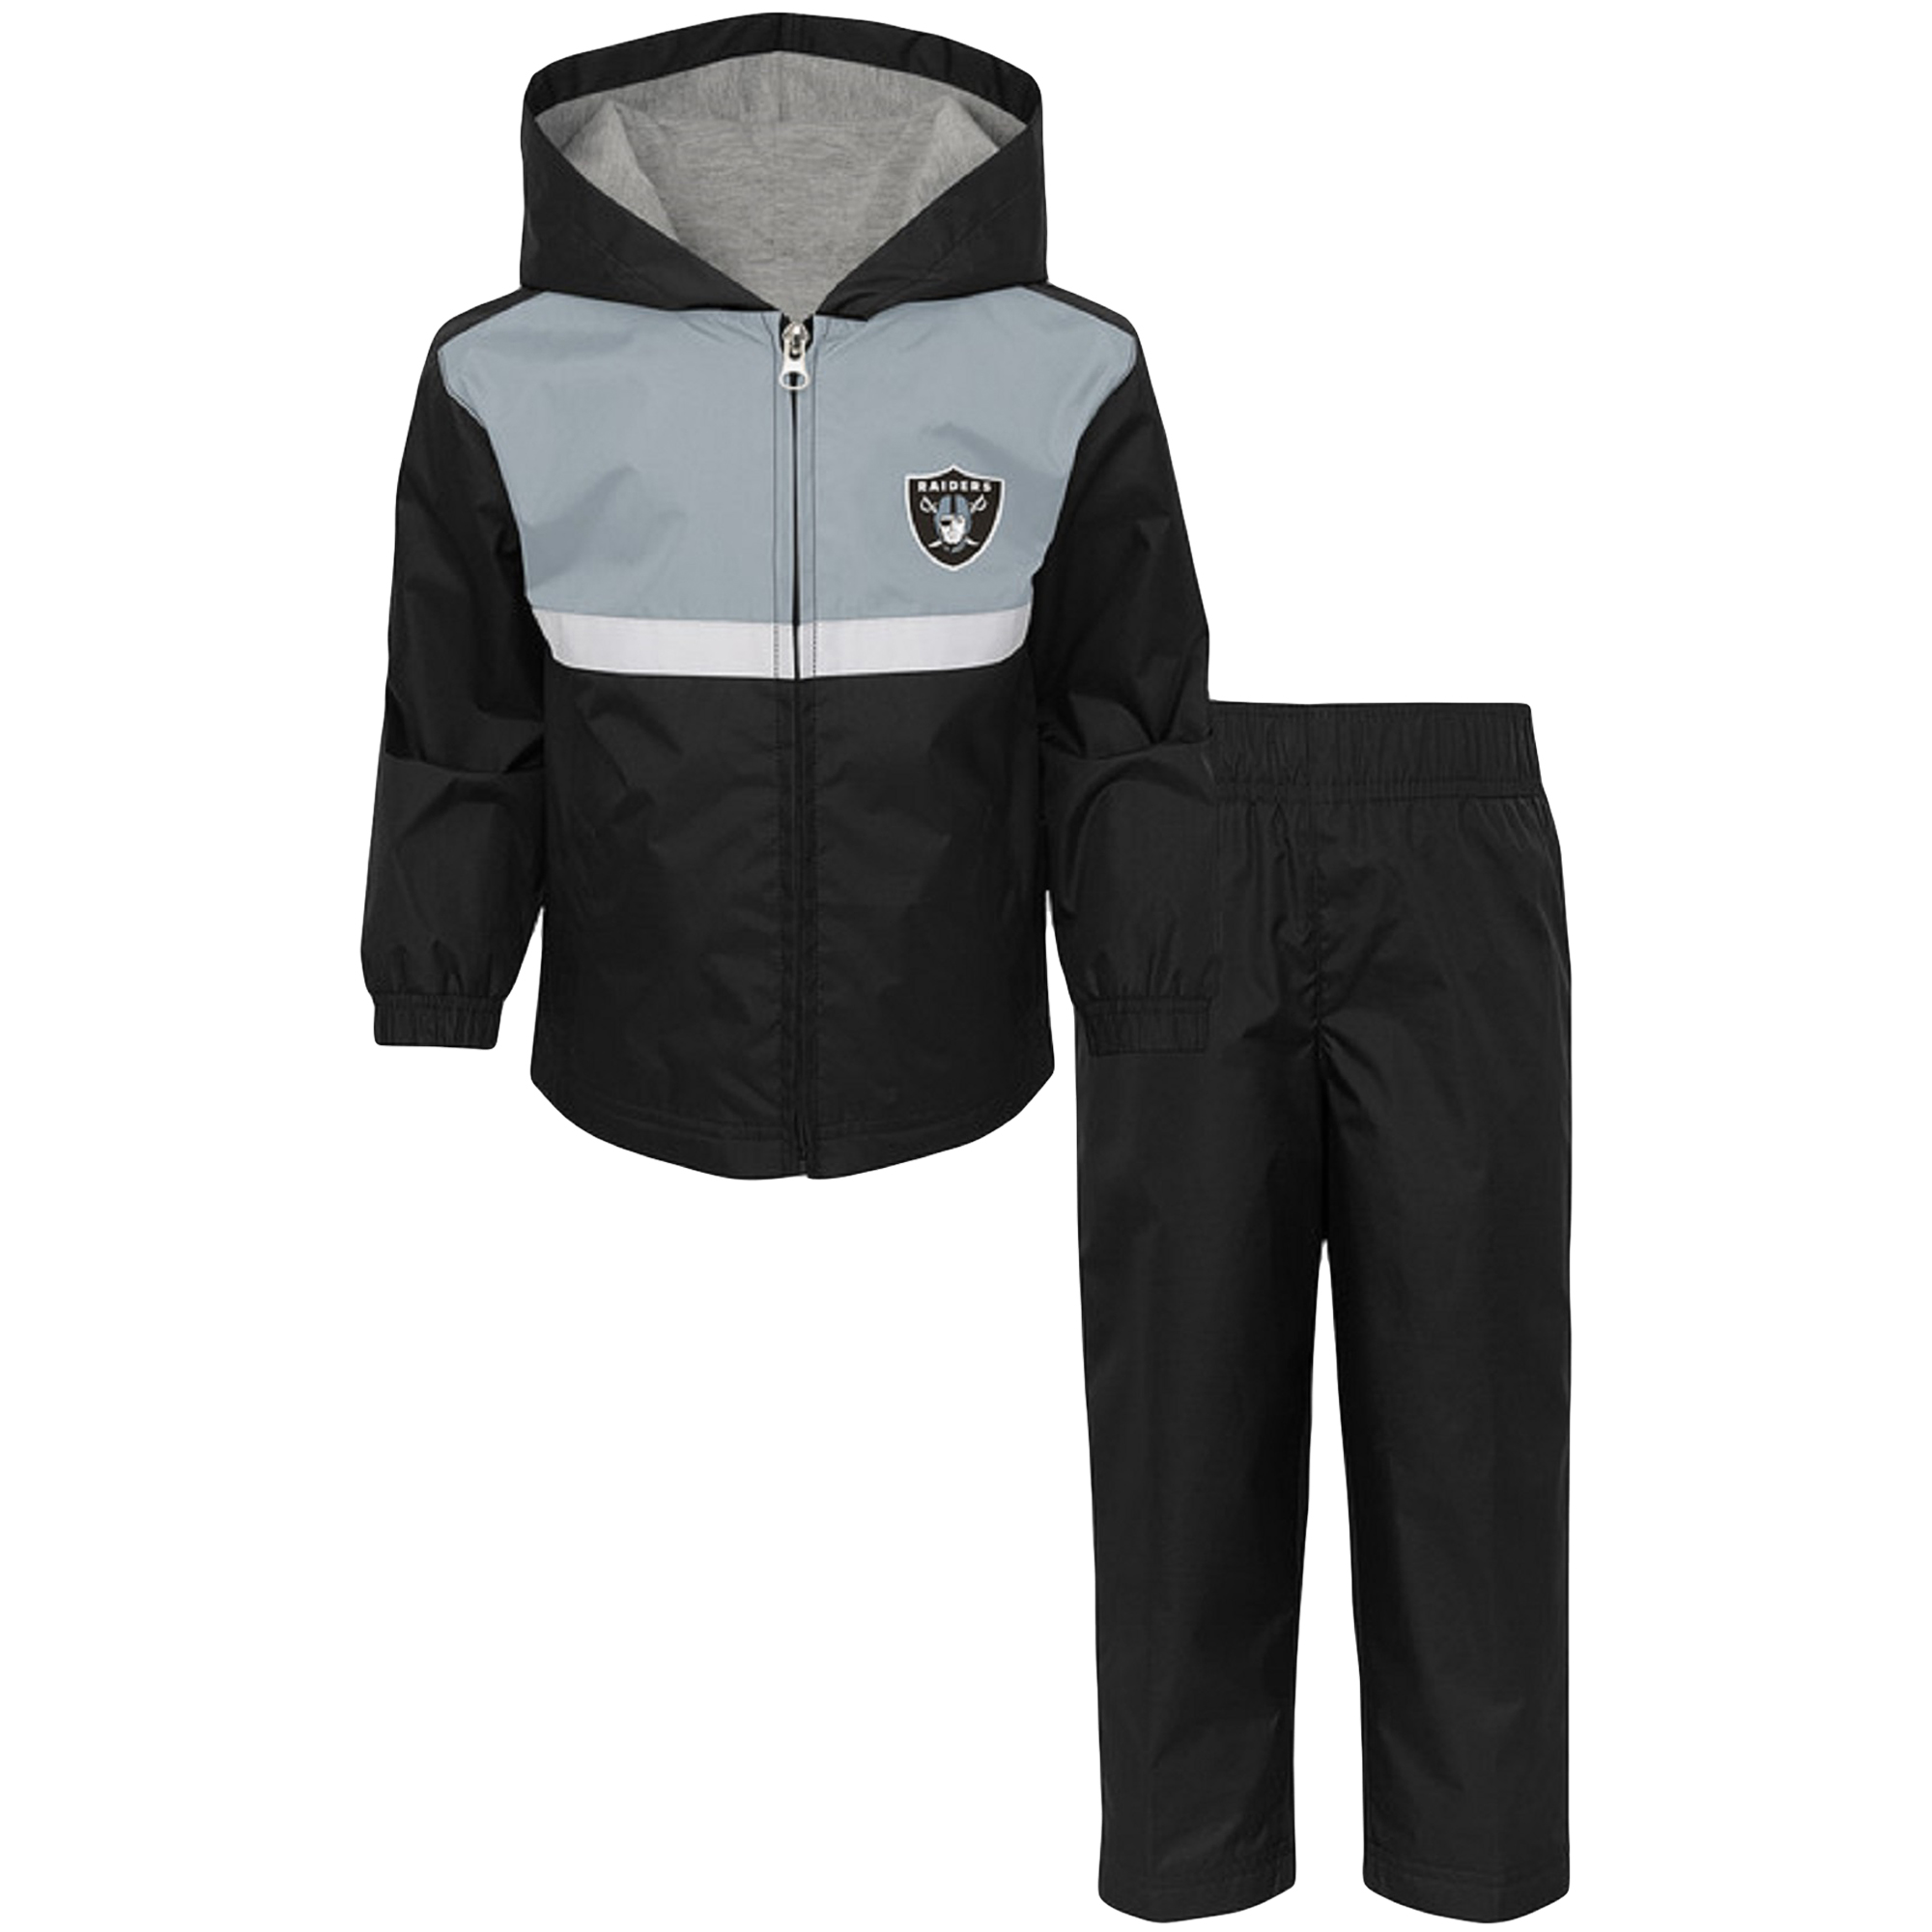 Toddler Black/Silver Oakland Raiders Full-Zip Jacket & Pants Set